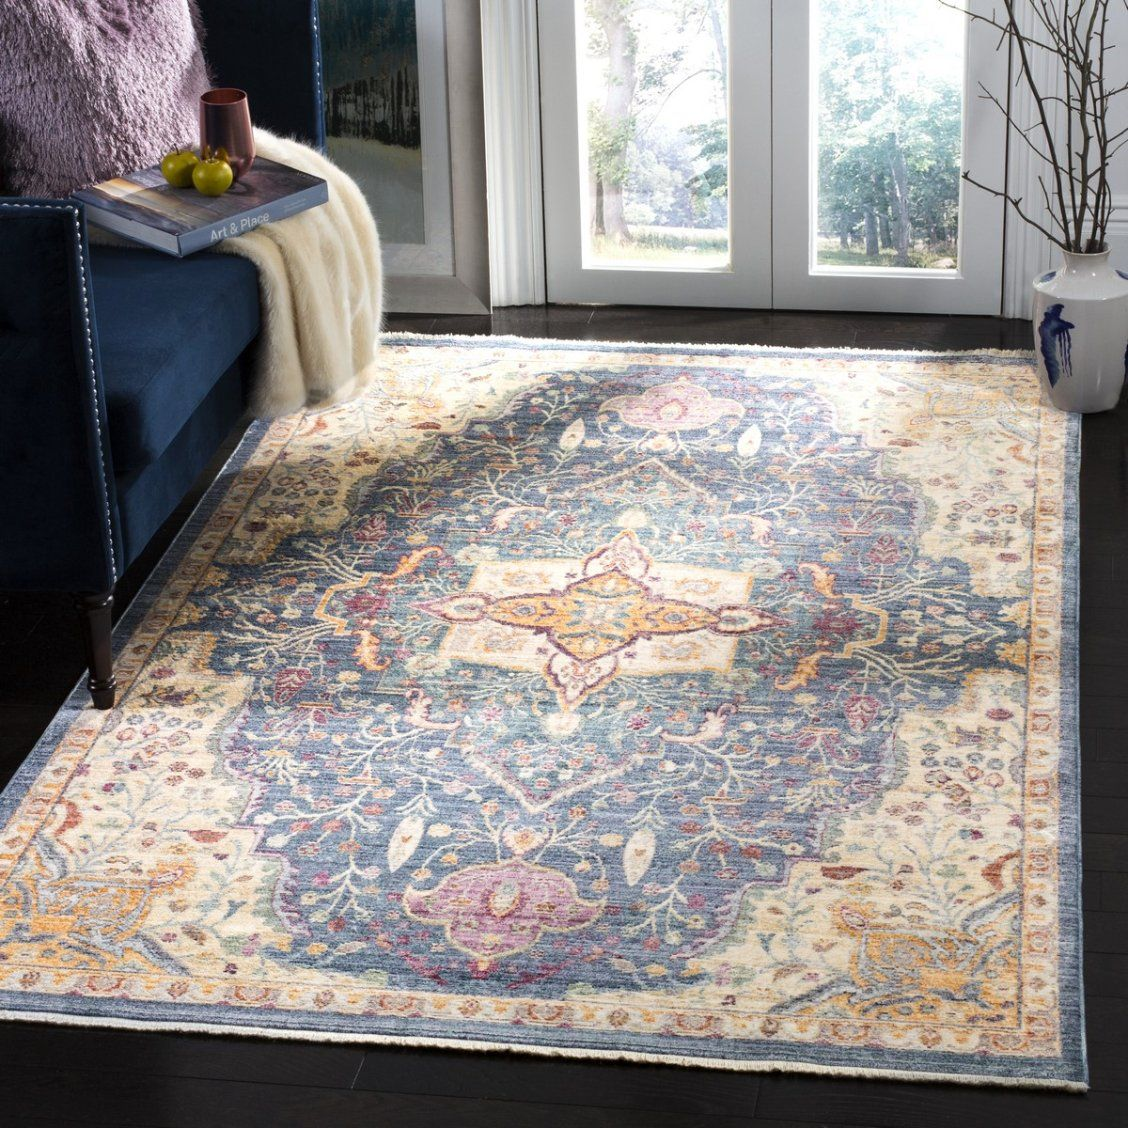 A Mod Rendition Of Traditional Rug Artistry This Illusion Area Rug Plays To Contemporary Decor Preferences Wi Purple Area Rugs Traditional Area Rugs Area Rugs